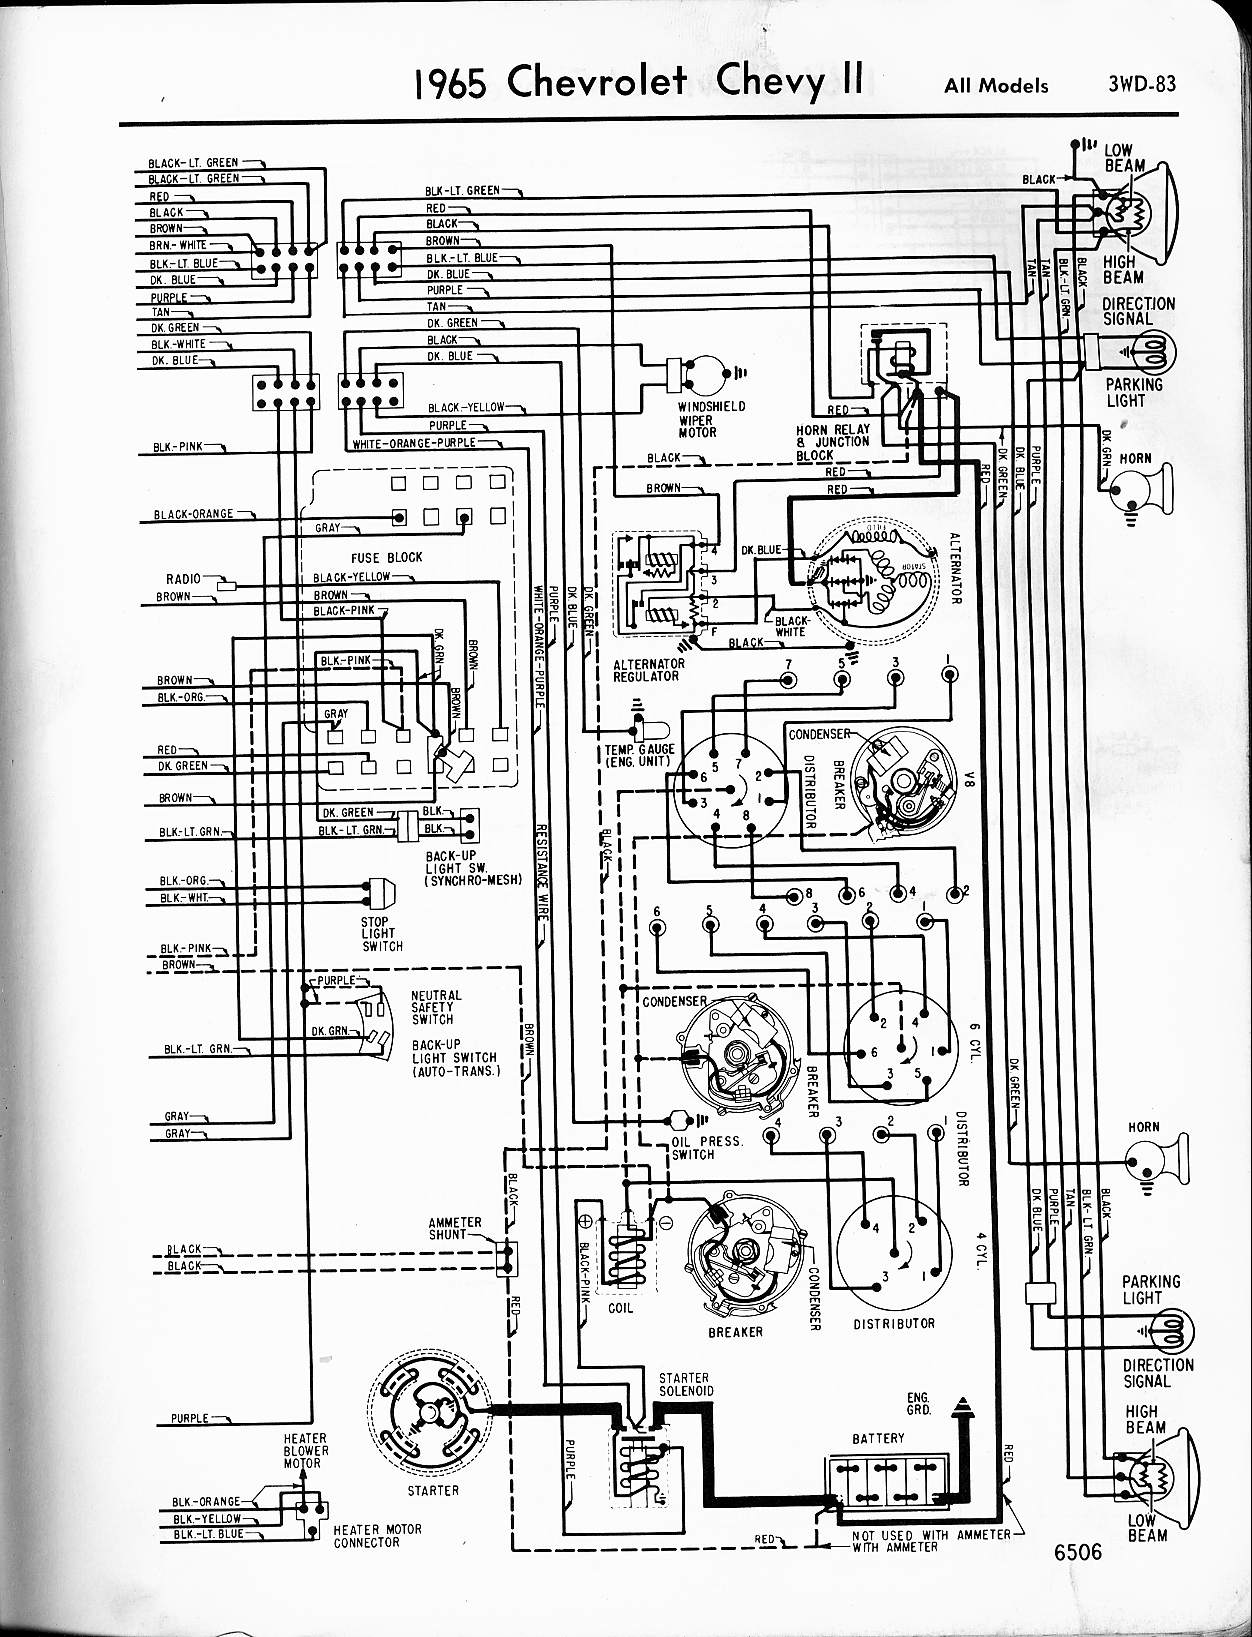 MWireChev65_3WD 083 chevy diagrams 1968 corvette wiring diagram at readyjetset.co